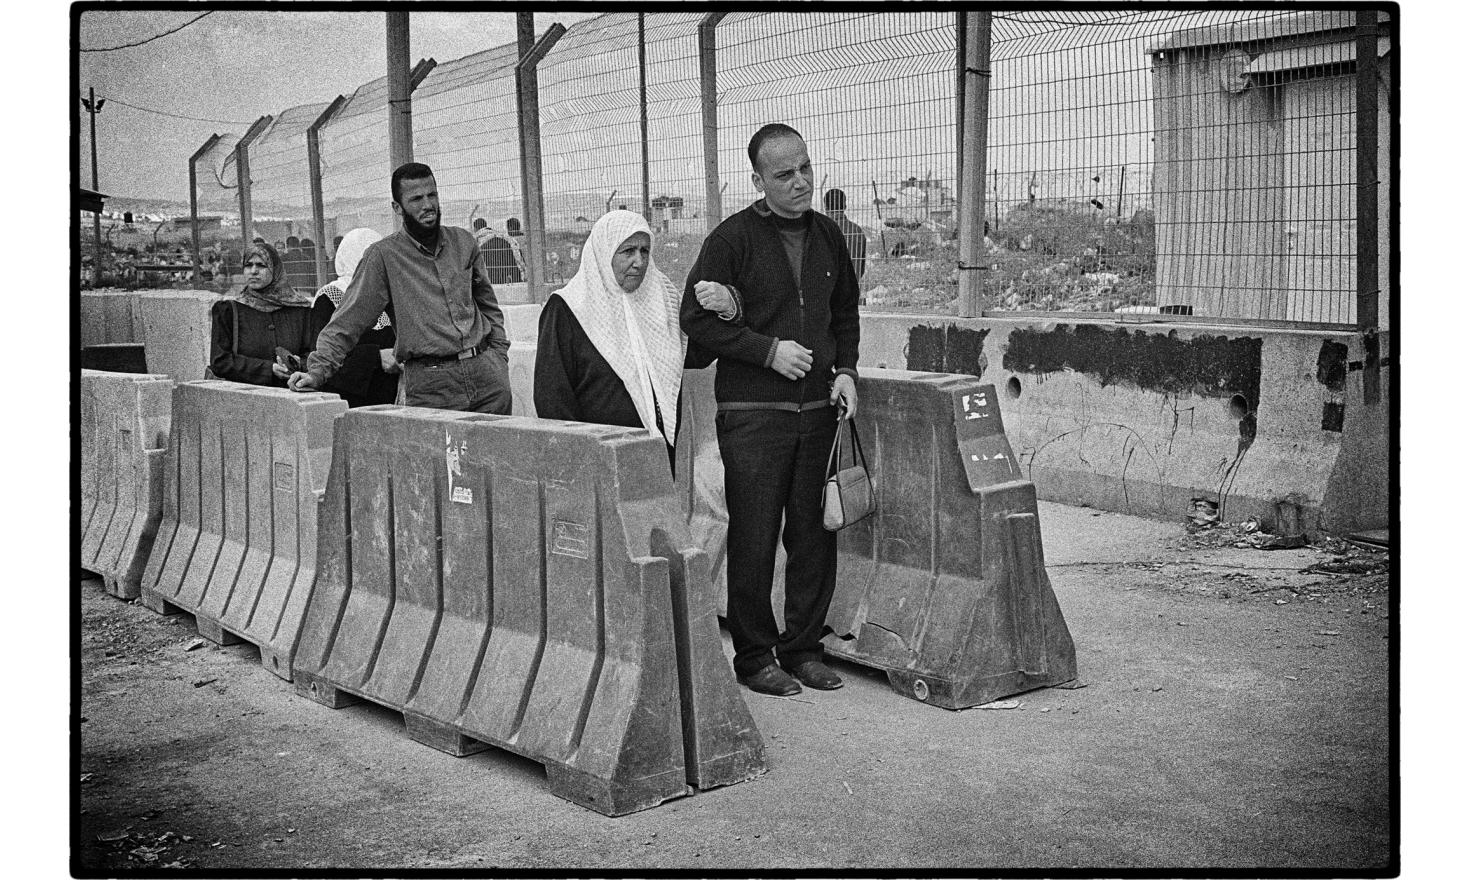 Qalandia checkpoint, the main crossing point between Jerusalem and Ramallah. April 2004.